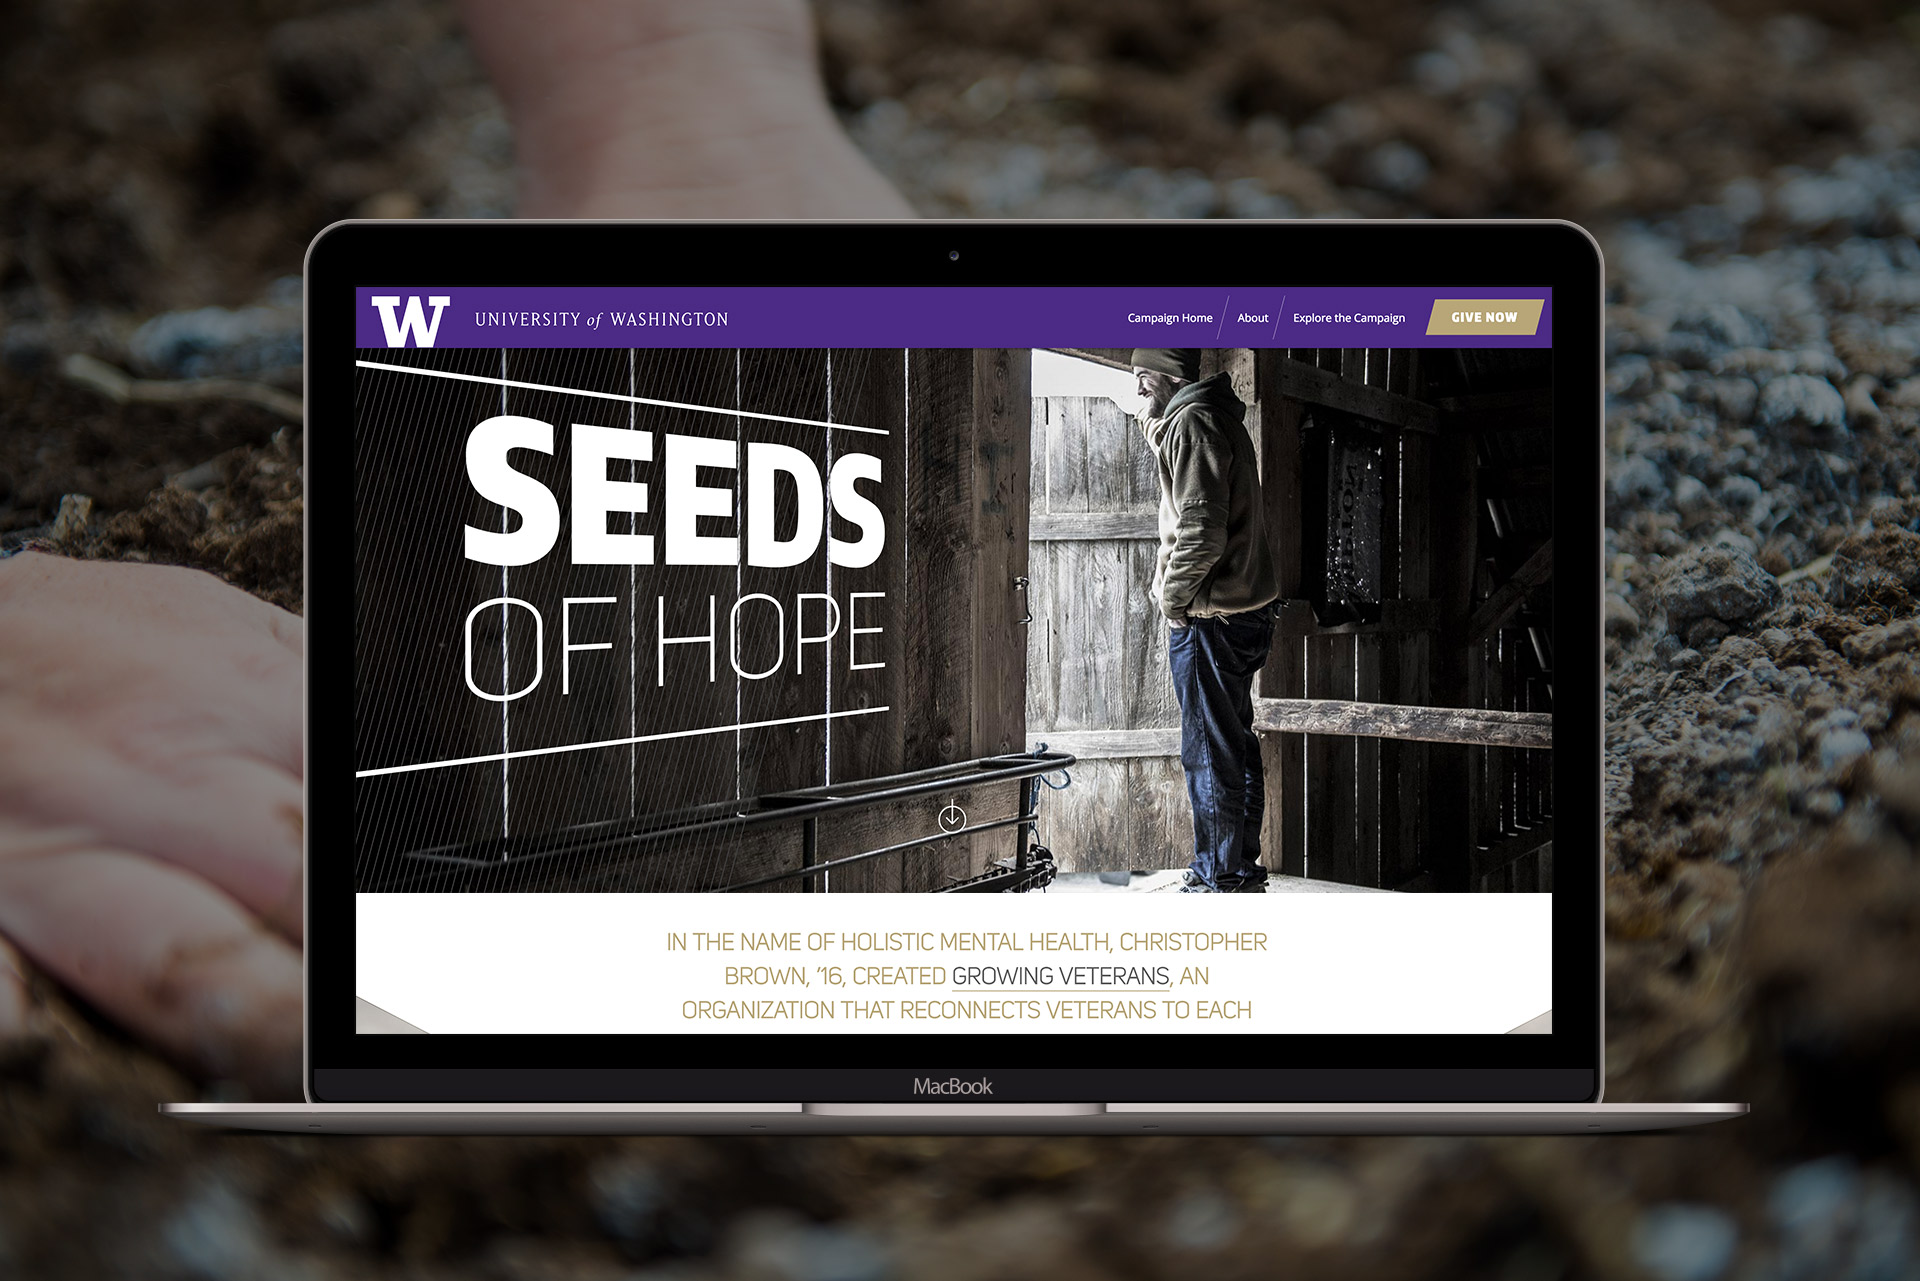 seeds of hope website design thumbnail